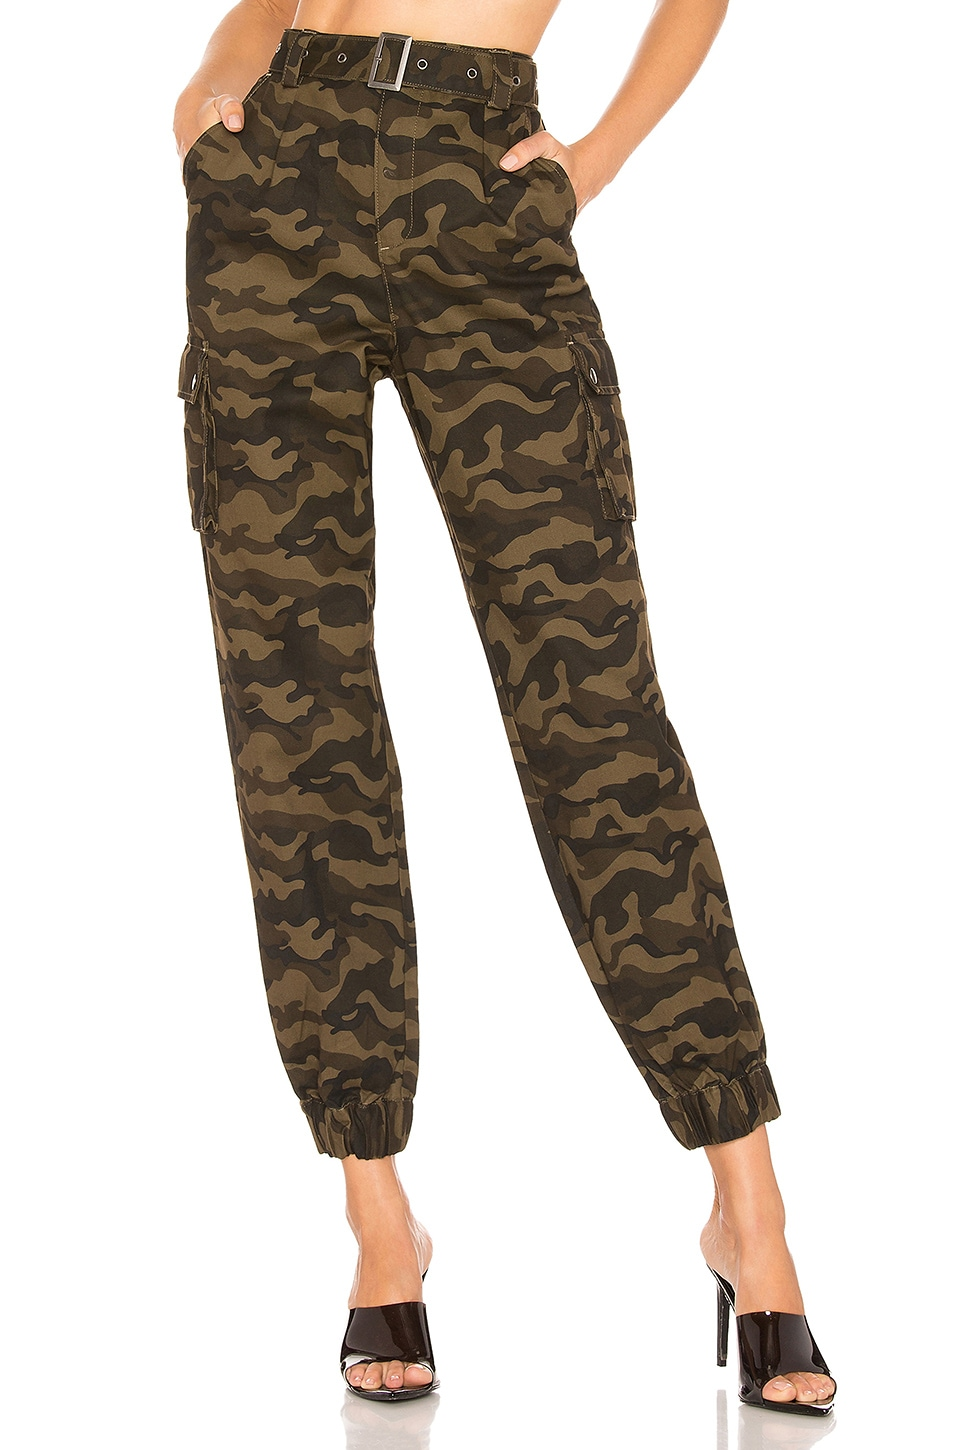 h:ours Rian Pants in Camo